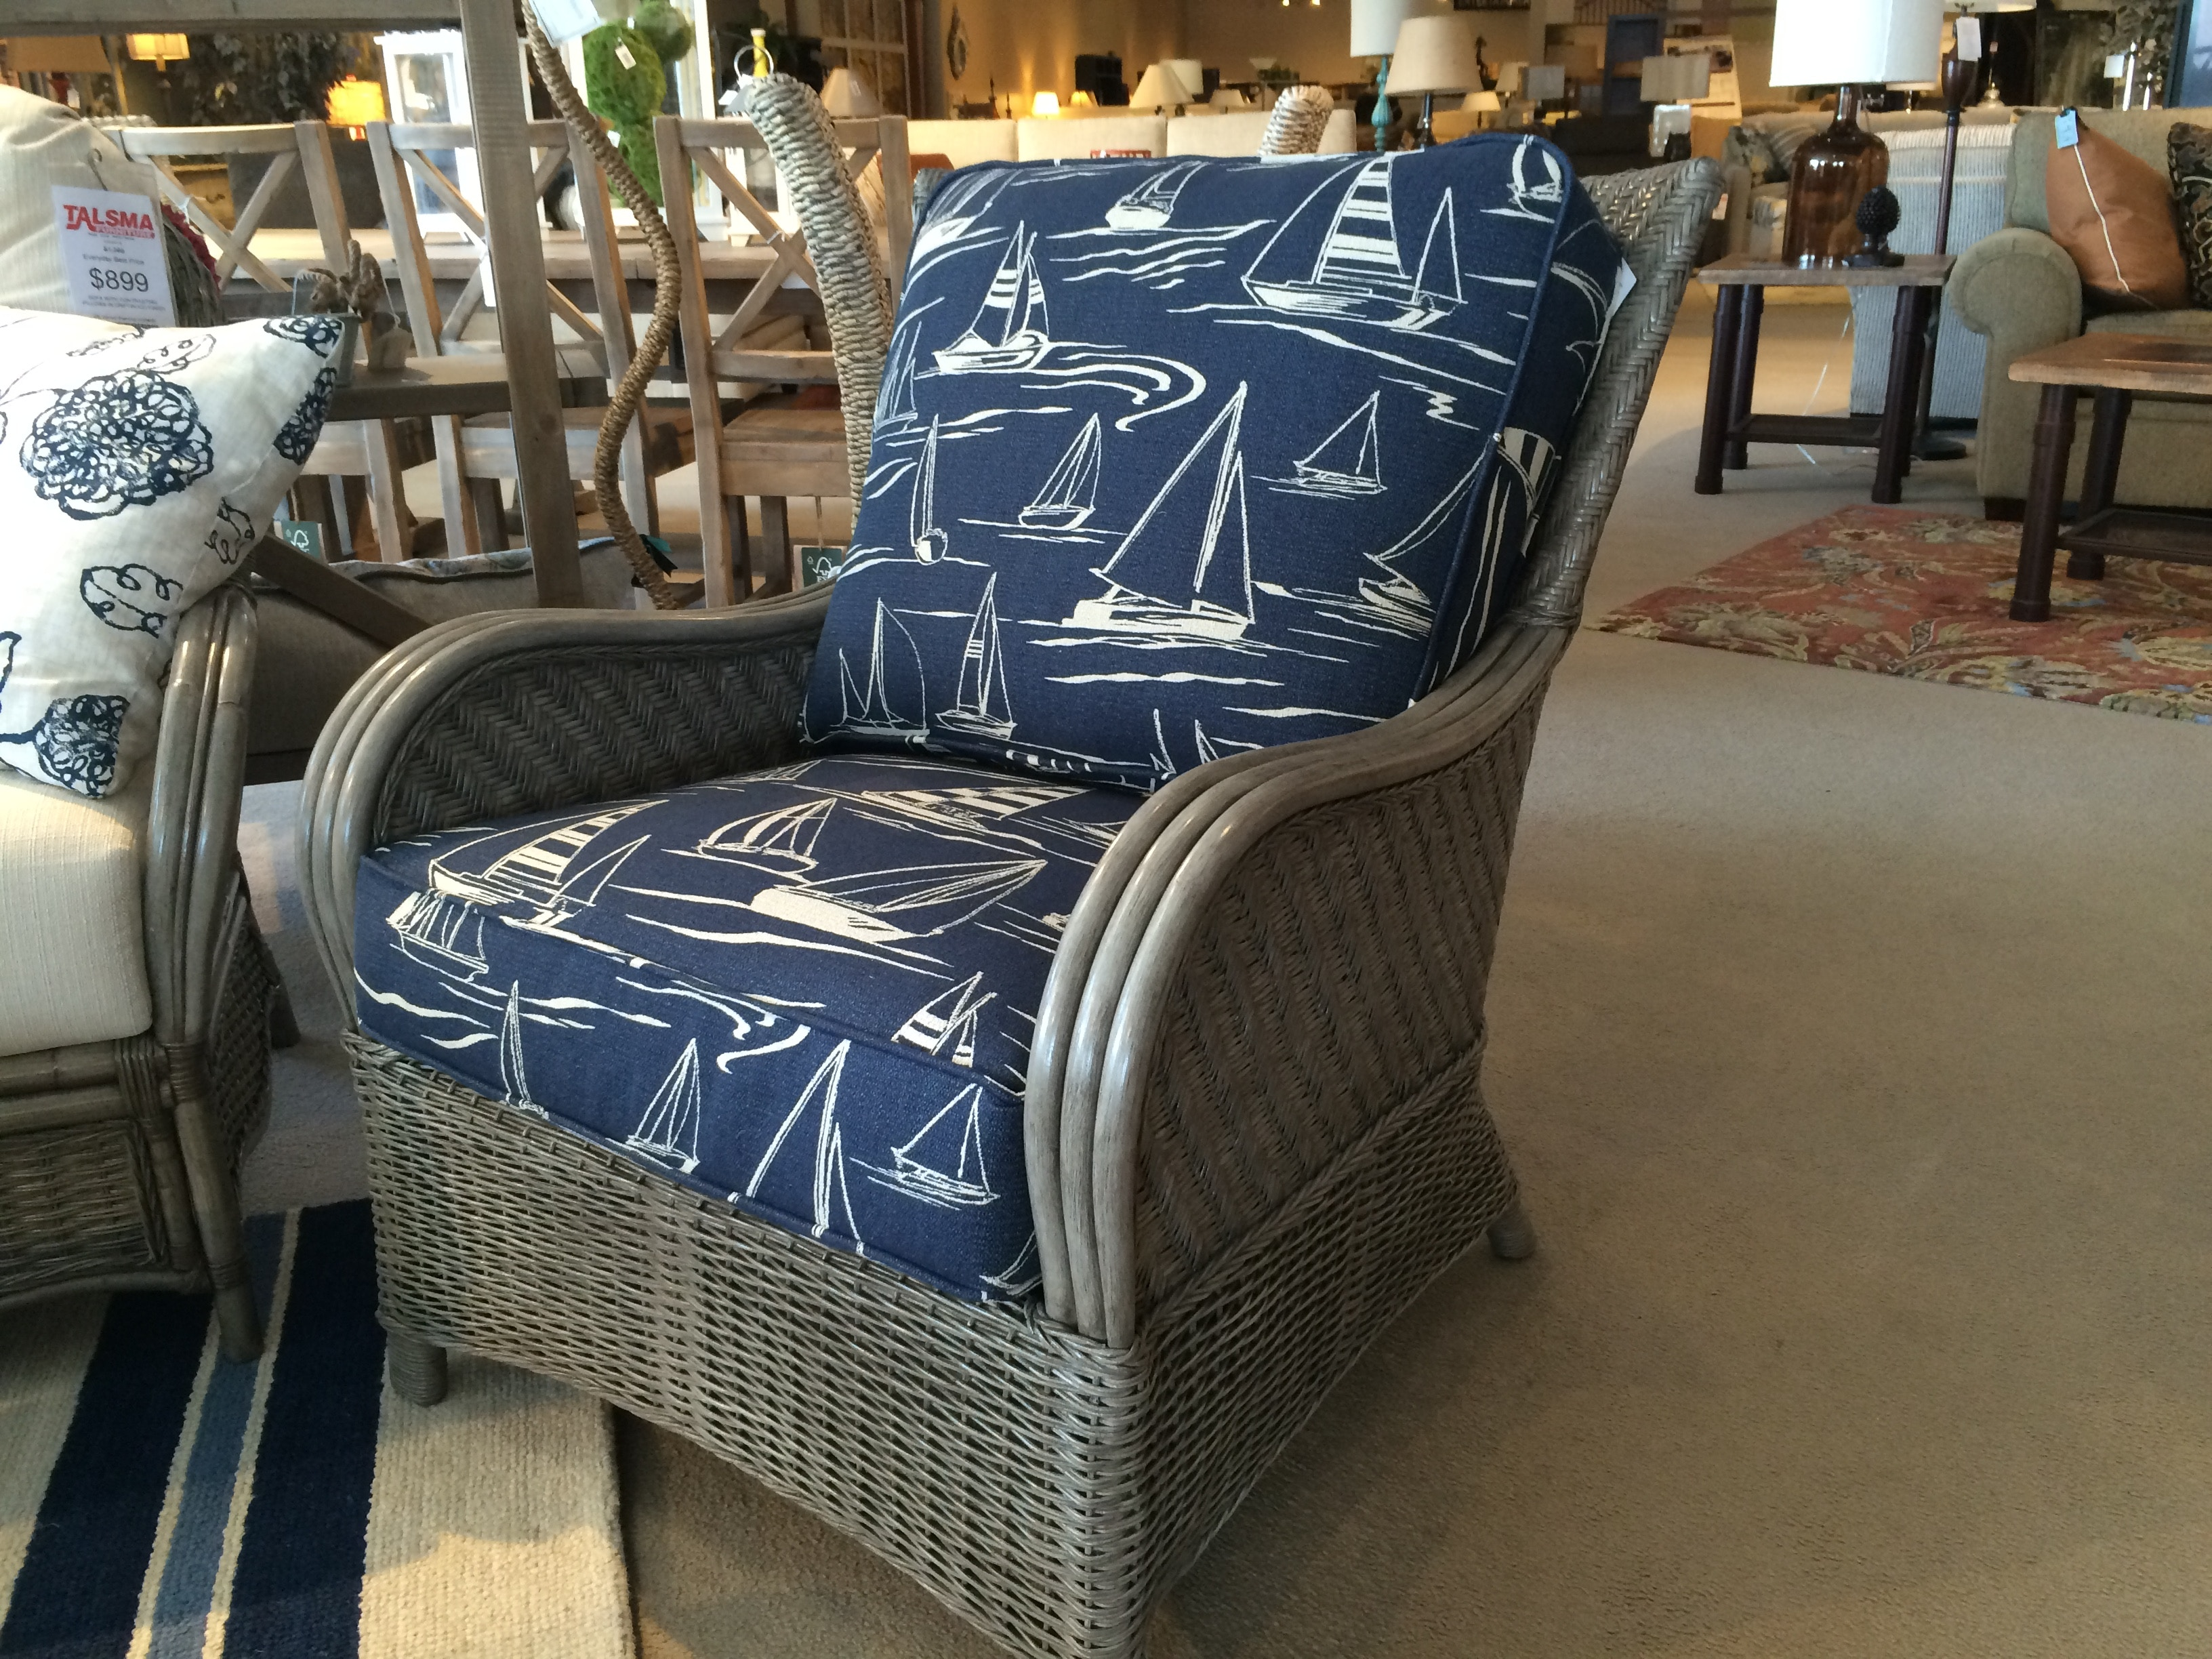 Braxton Culler Furniture Talsma Furniture Hudsonville Holland